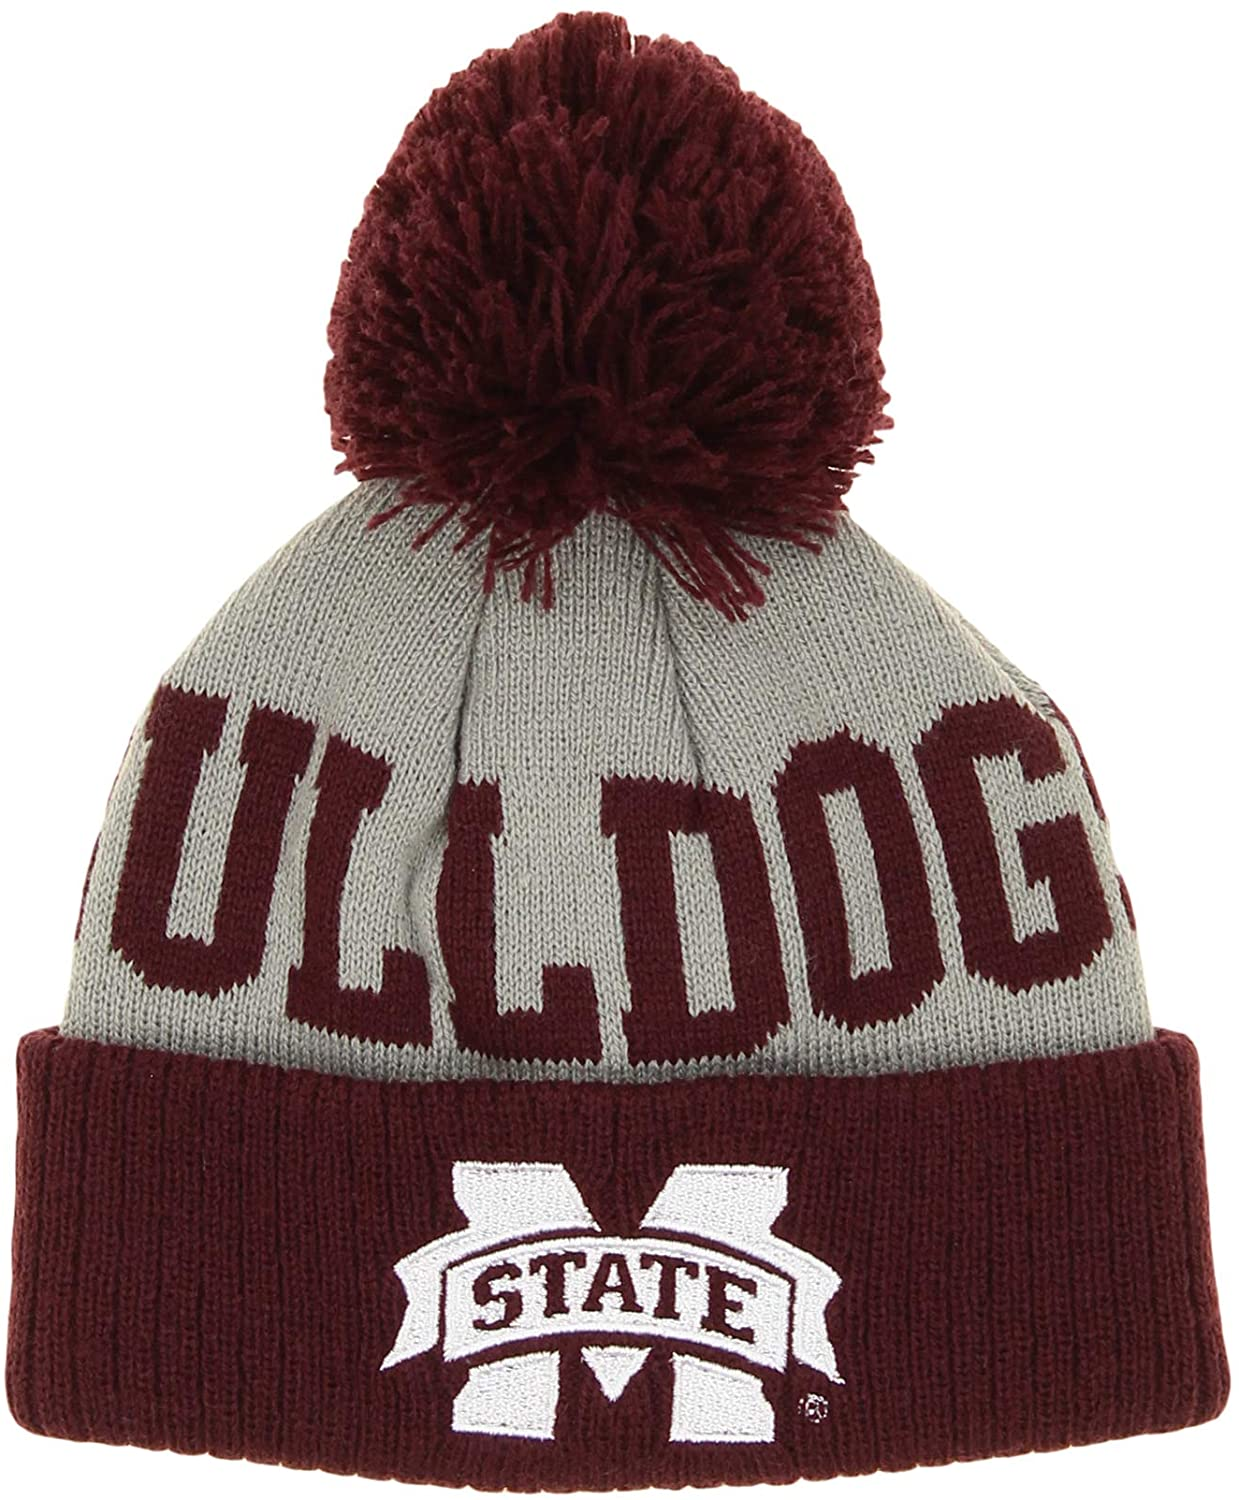 OuterStuff NCAA Infants Mississippi State Bulldogs Jacquard Cuffed Knit Pom Hat, 12 Months